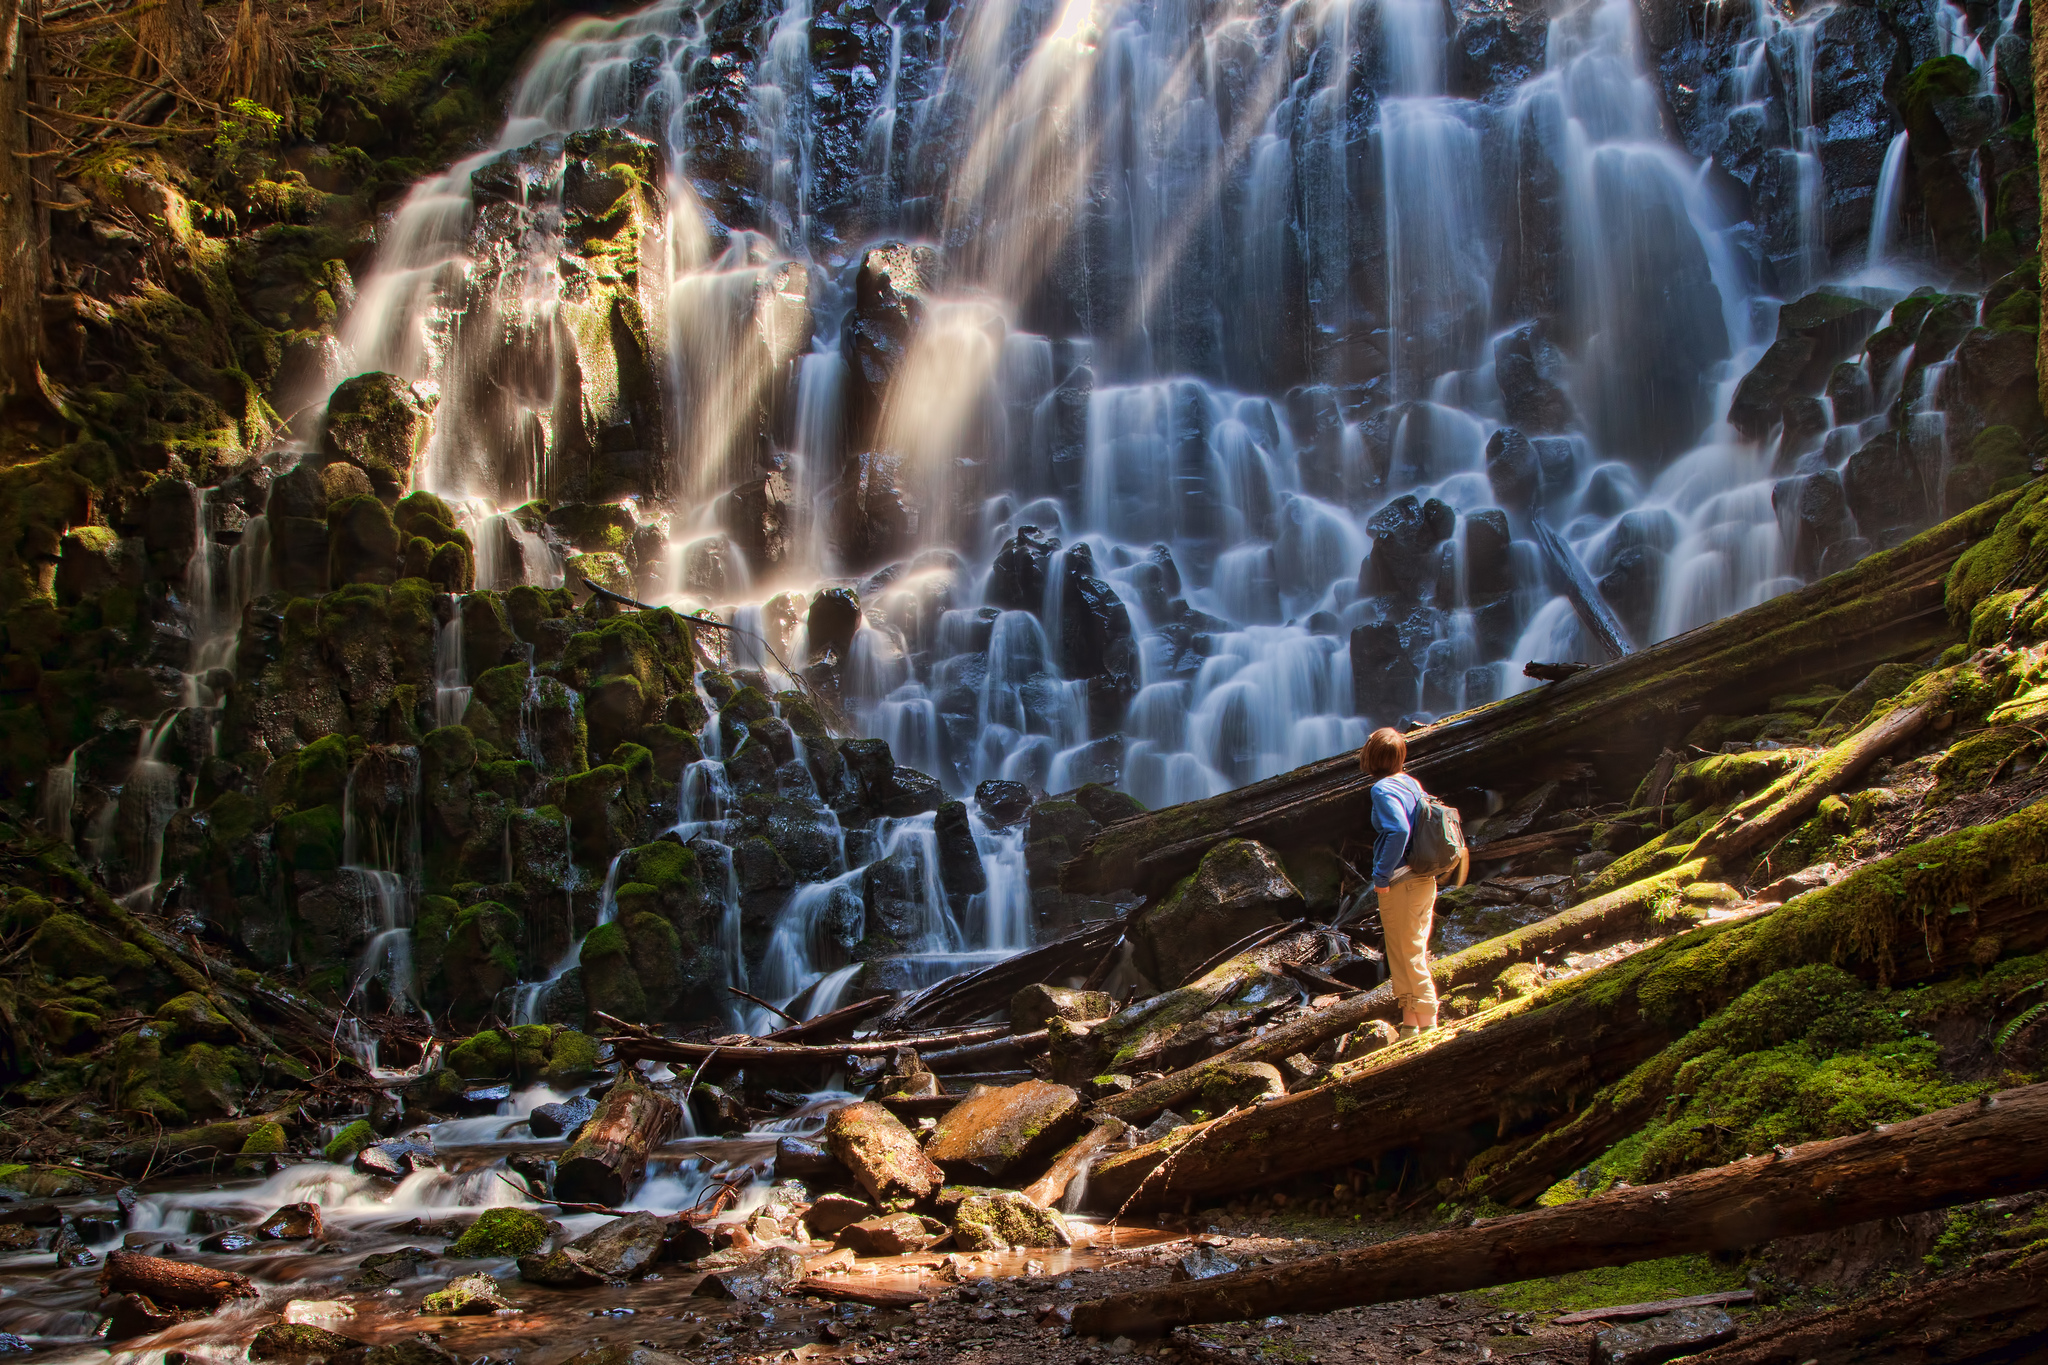 The Ramona Falls in Oregon is a Must-Do Adventure | That Oregon Life